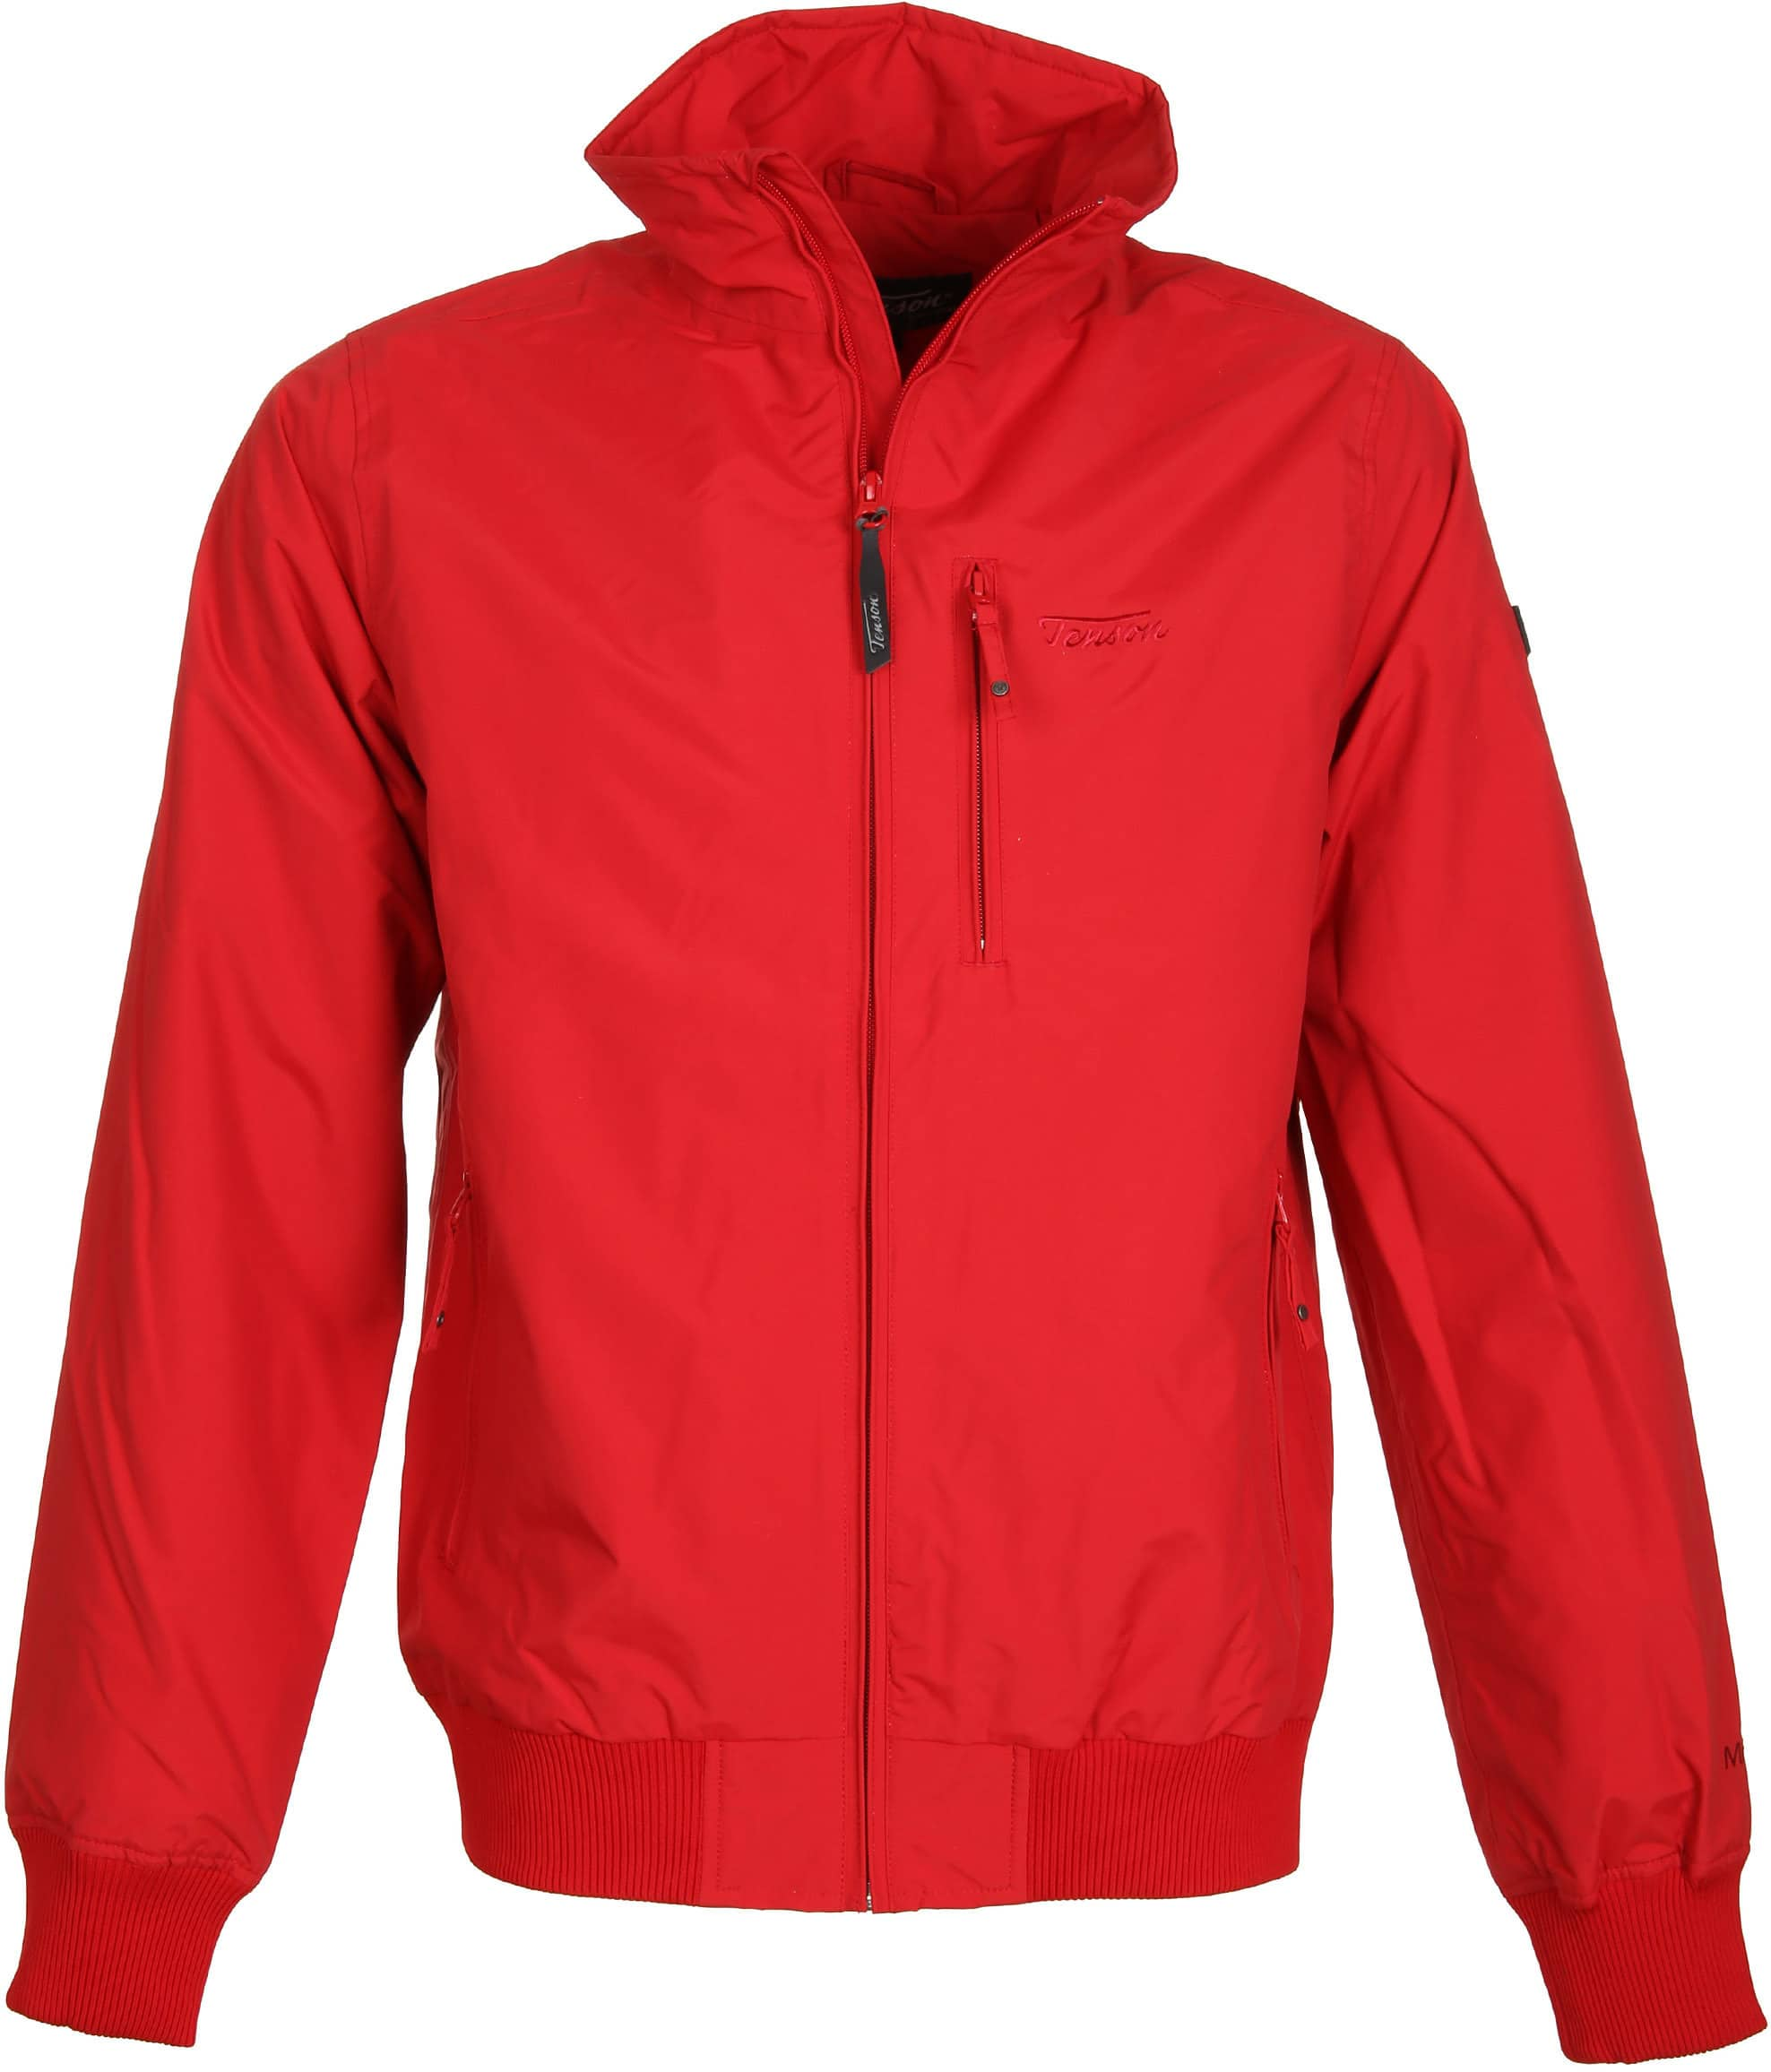 Tenson Summer Jacket Jadon Red 5013434-380 Jadon Red order online ... cacb329a9b